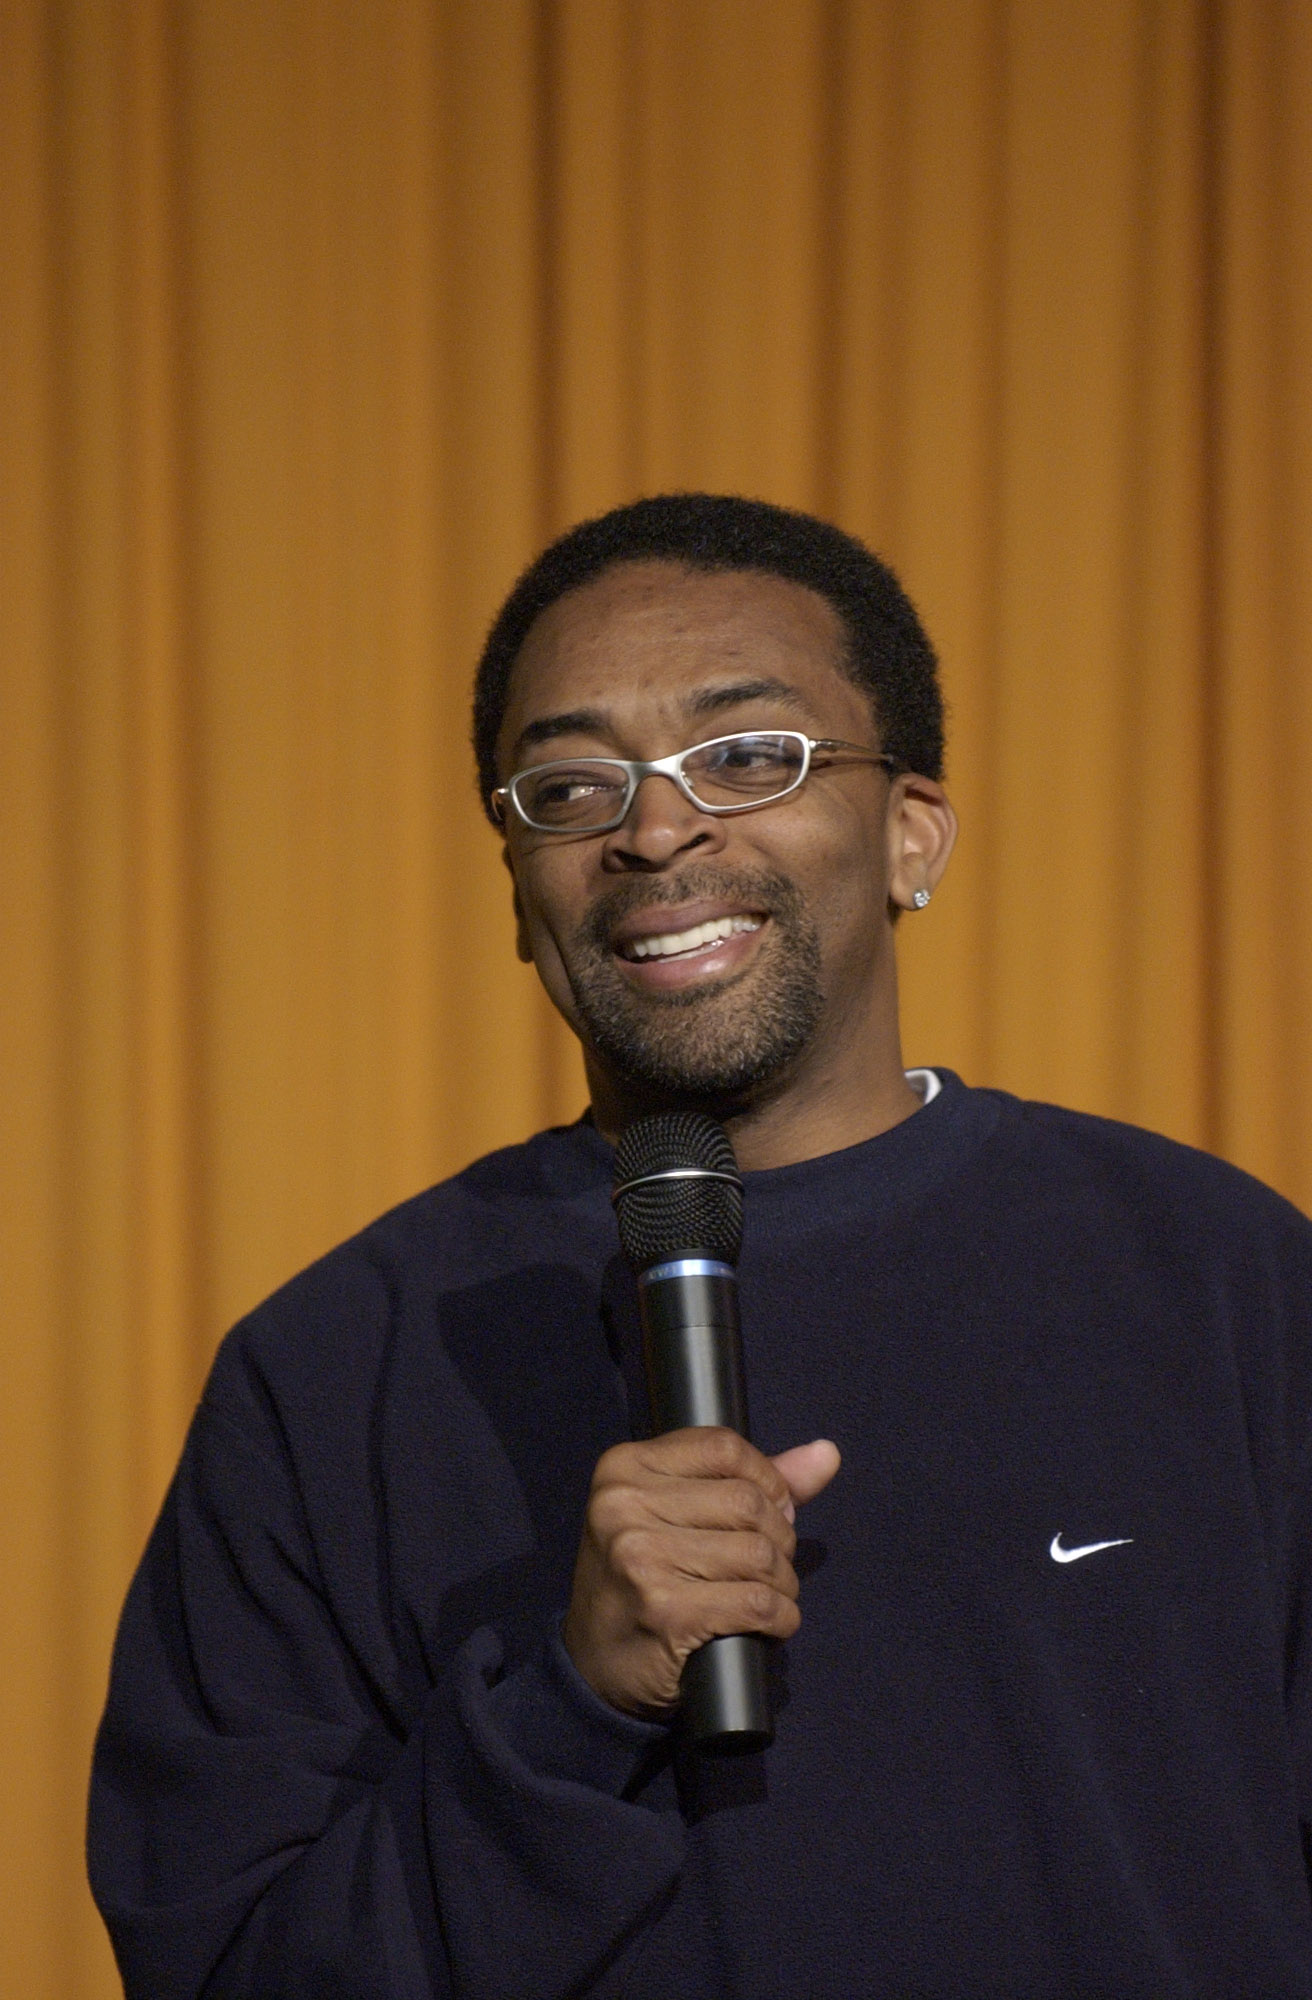 Filmmaker Spike Lee at DePauw in April 2003.